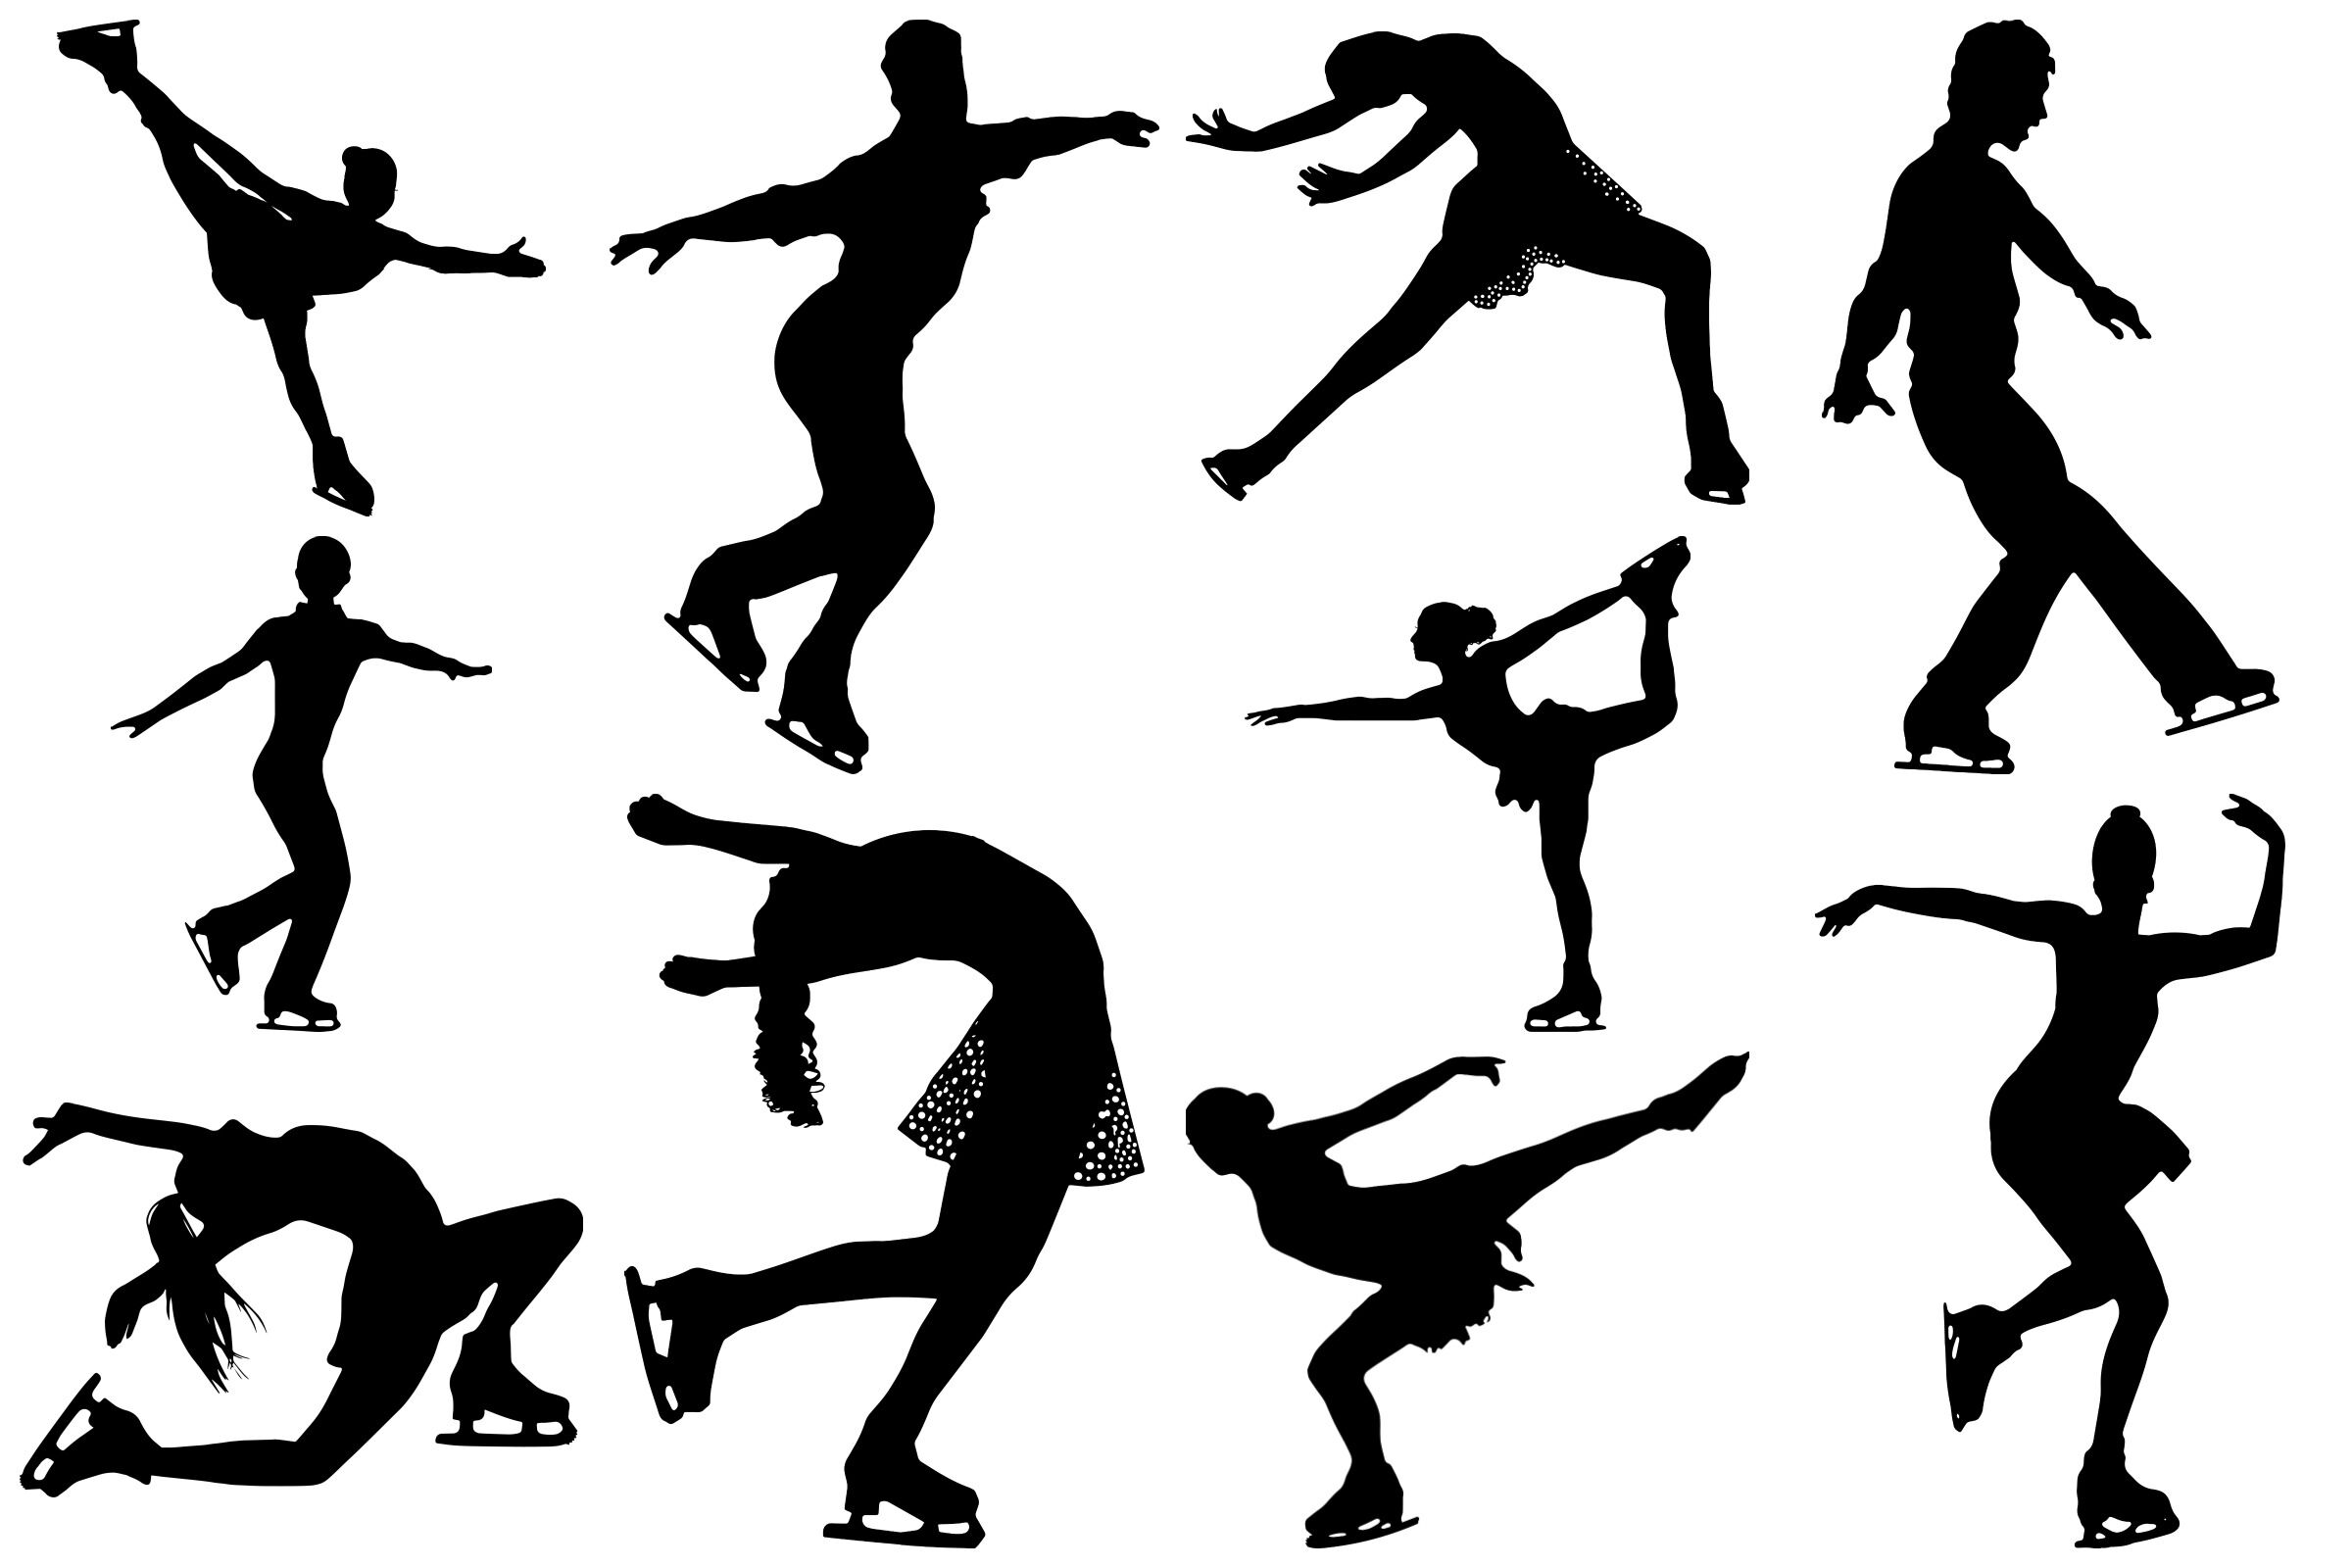 ice skater silhouette large ice skater wall sticker figure skating silhouette silhouette ice skater